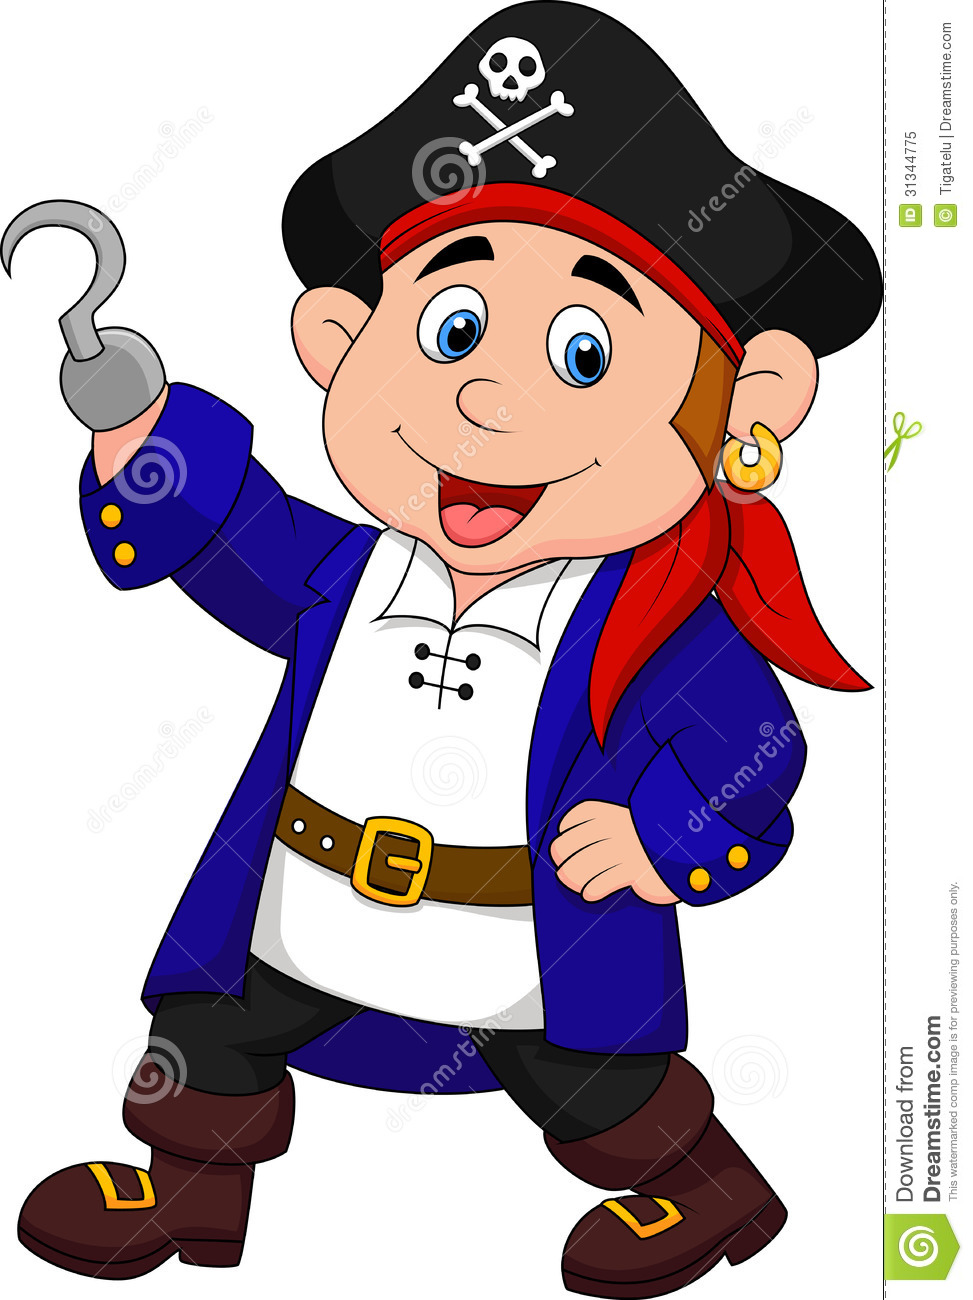 Cute Pirate Kid Cartoon Royalty Free Stock Photo - Image ...